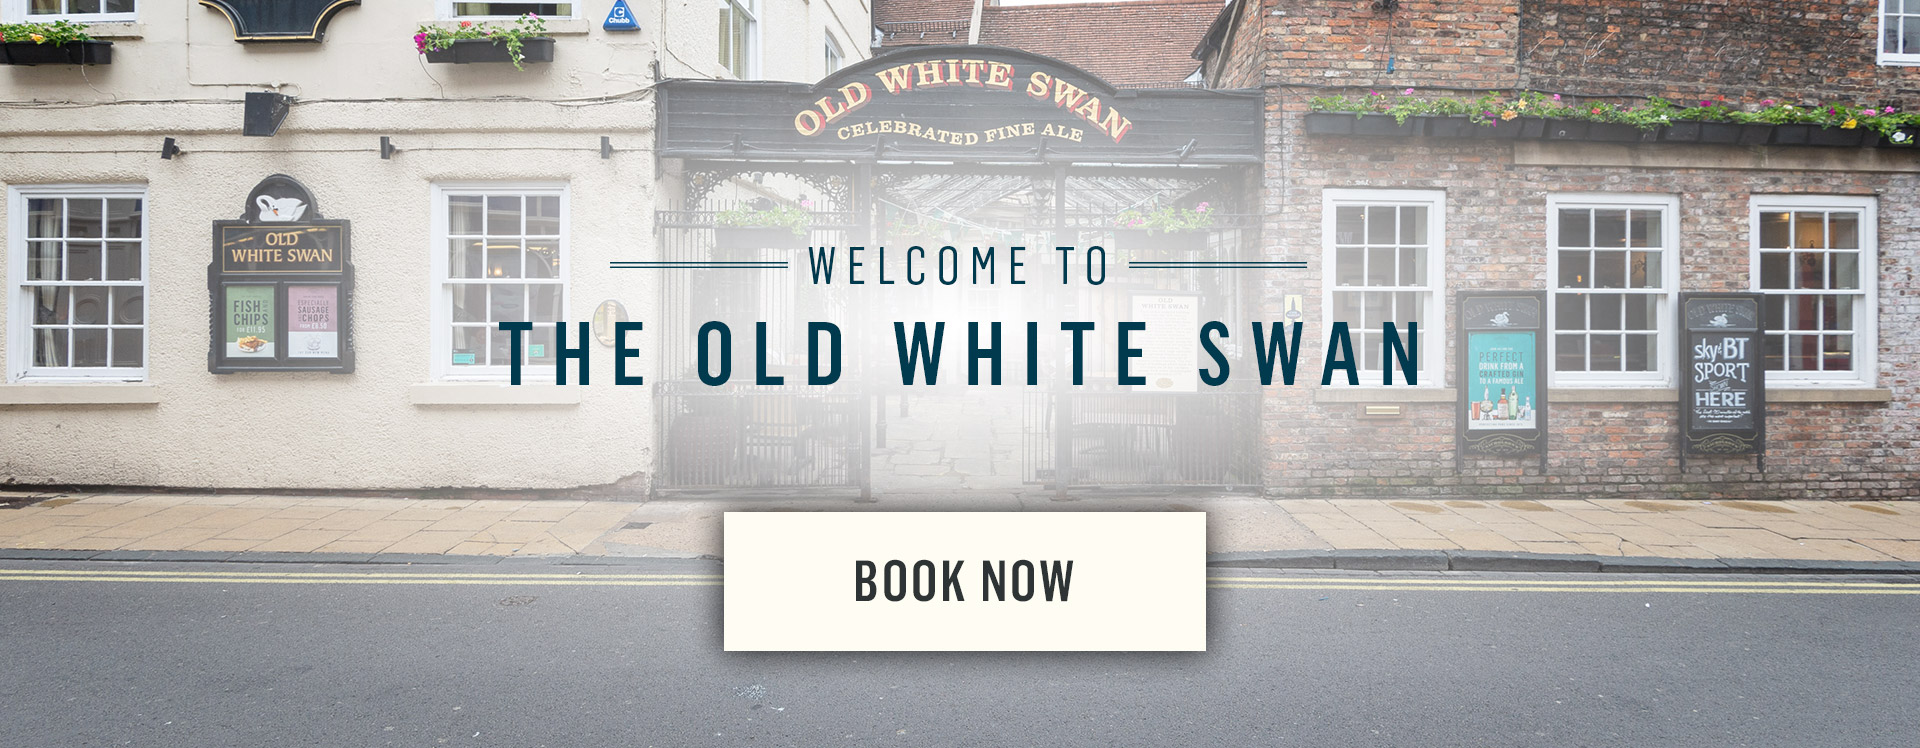 Welcome to The Old White Swan - Book Now